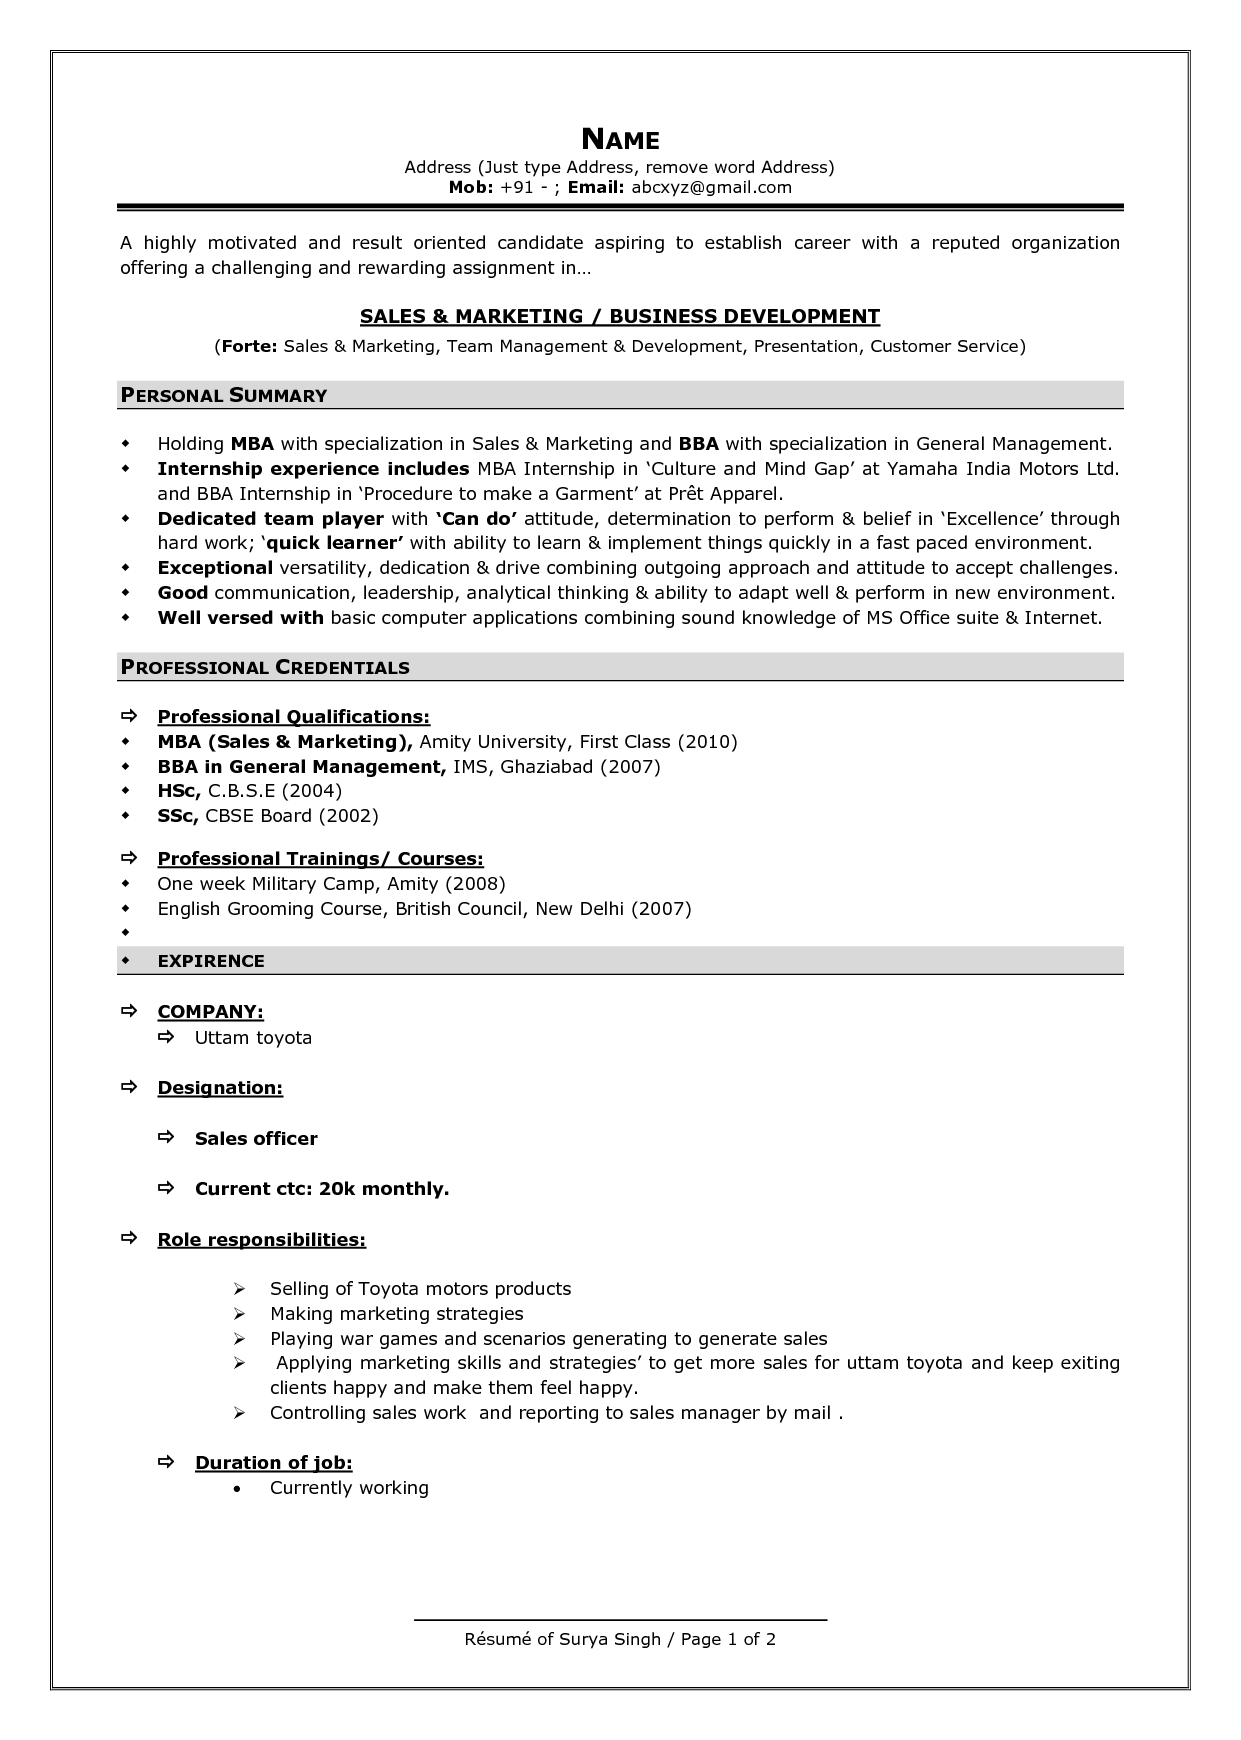 professional resume format resume format examples resume format download best resume template